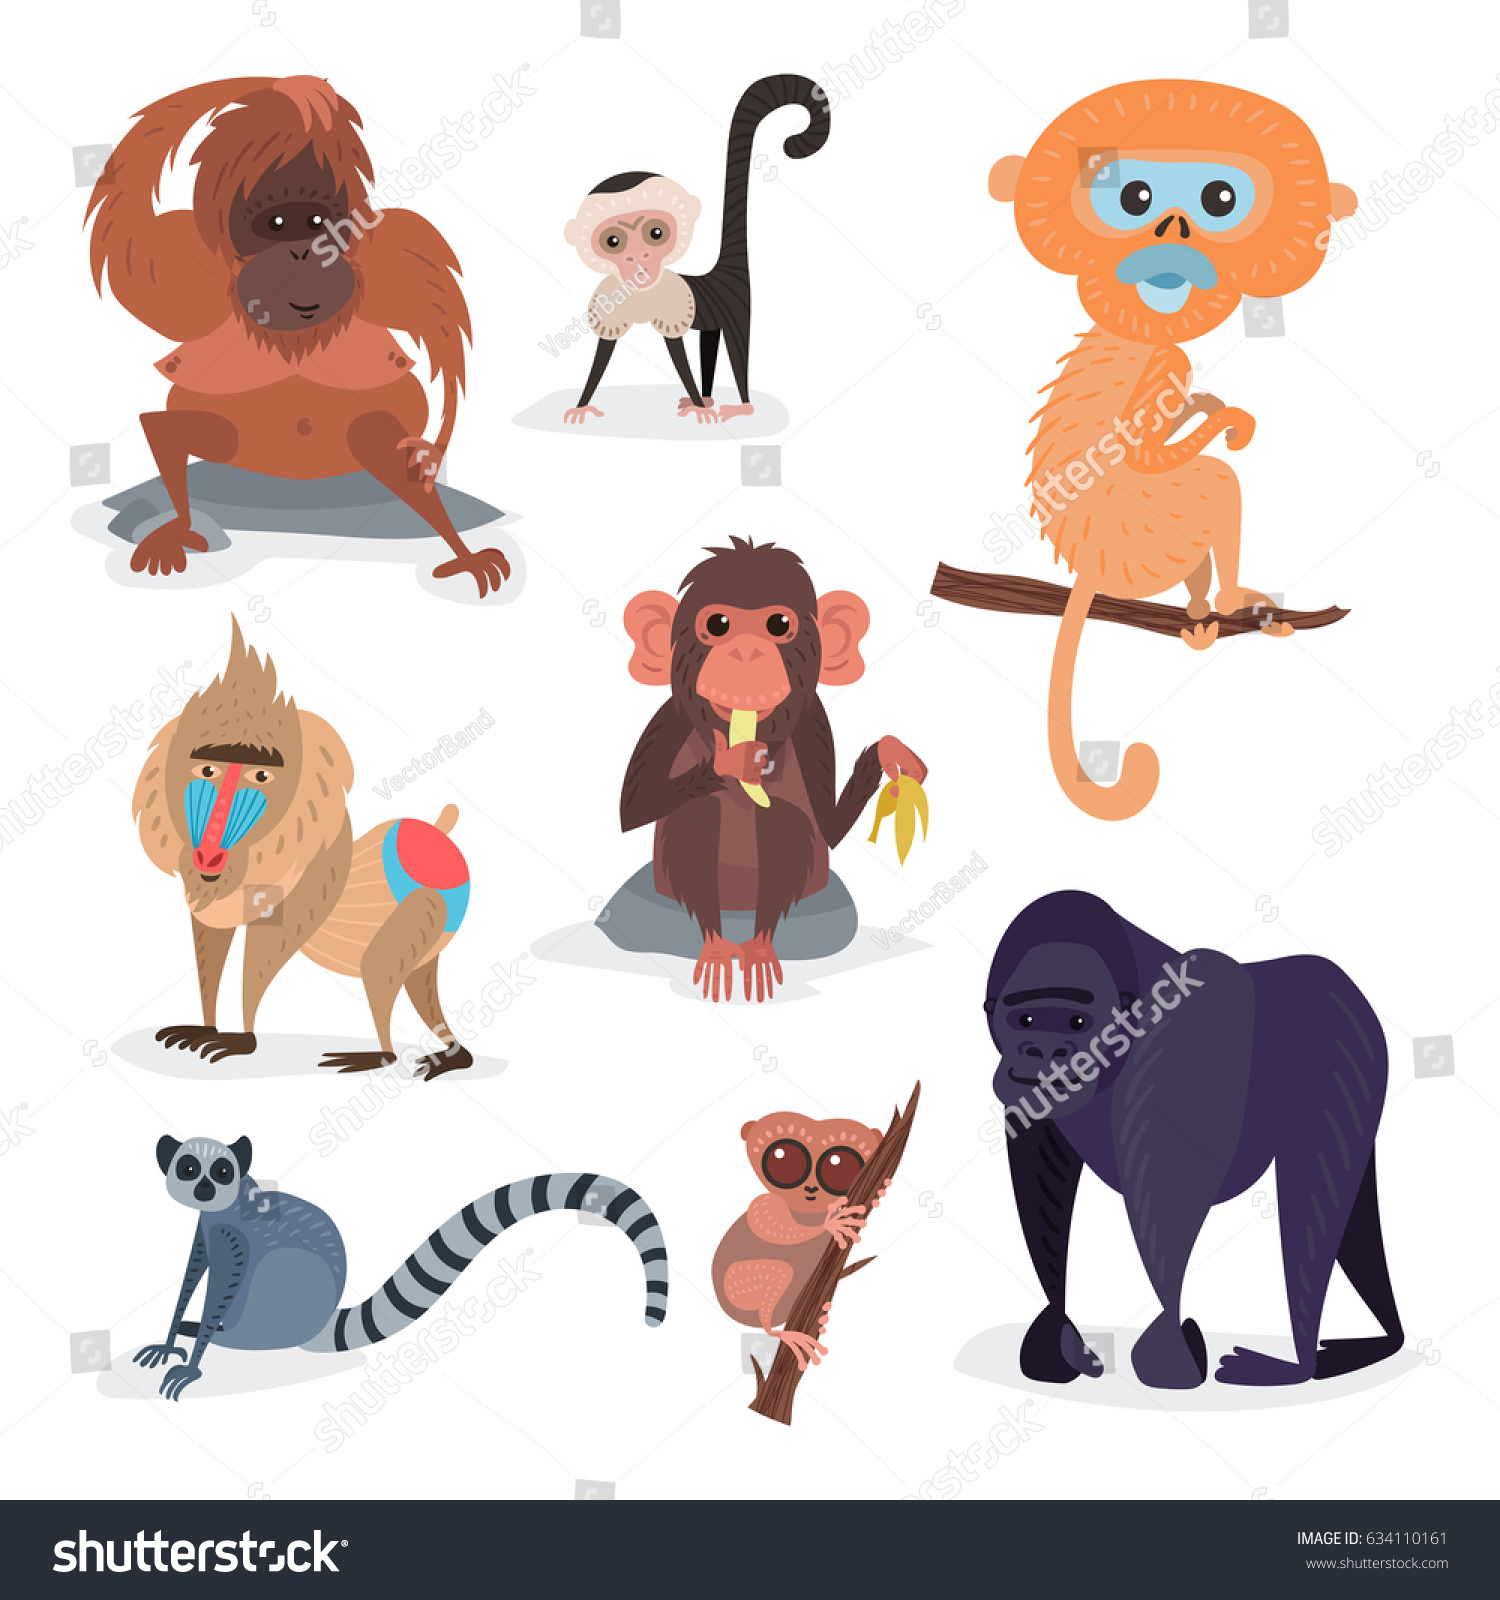 Different Breeds Monkey Character Animal Wild Stock Vector (Royalty Free)  634110161